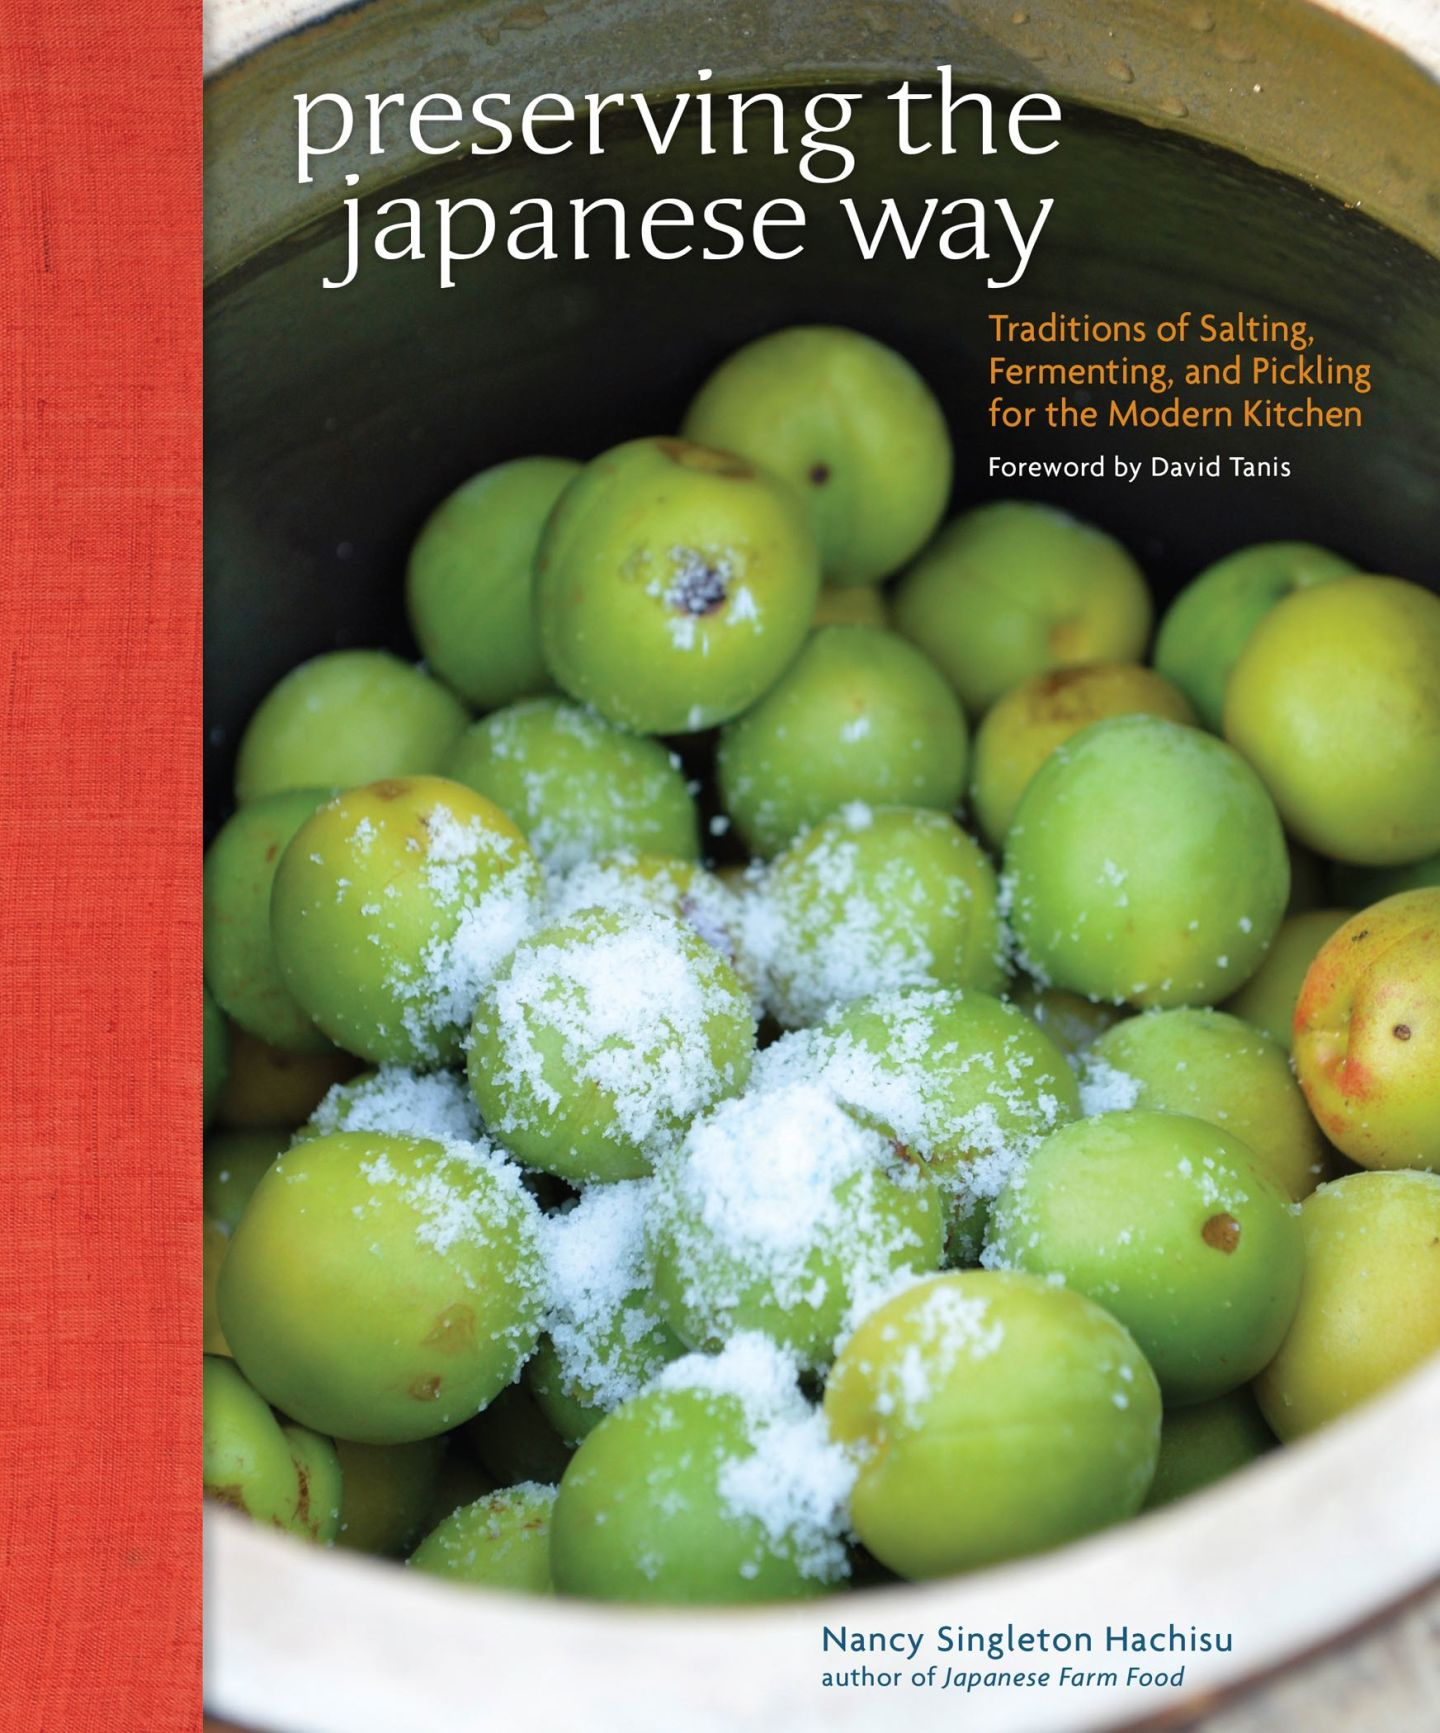 Preserving the Japanese Way: Traditions of Salting, Fermenting, and Pickling for the Modern Kitchen by Nancy Singleton Hachisu